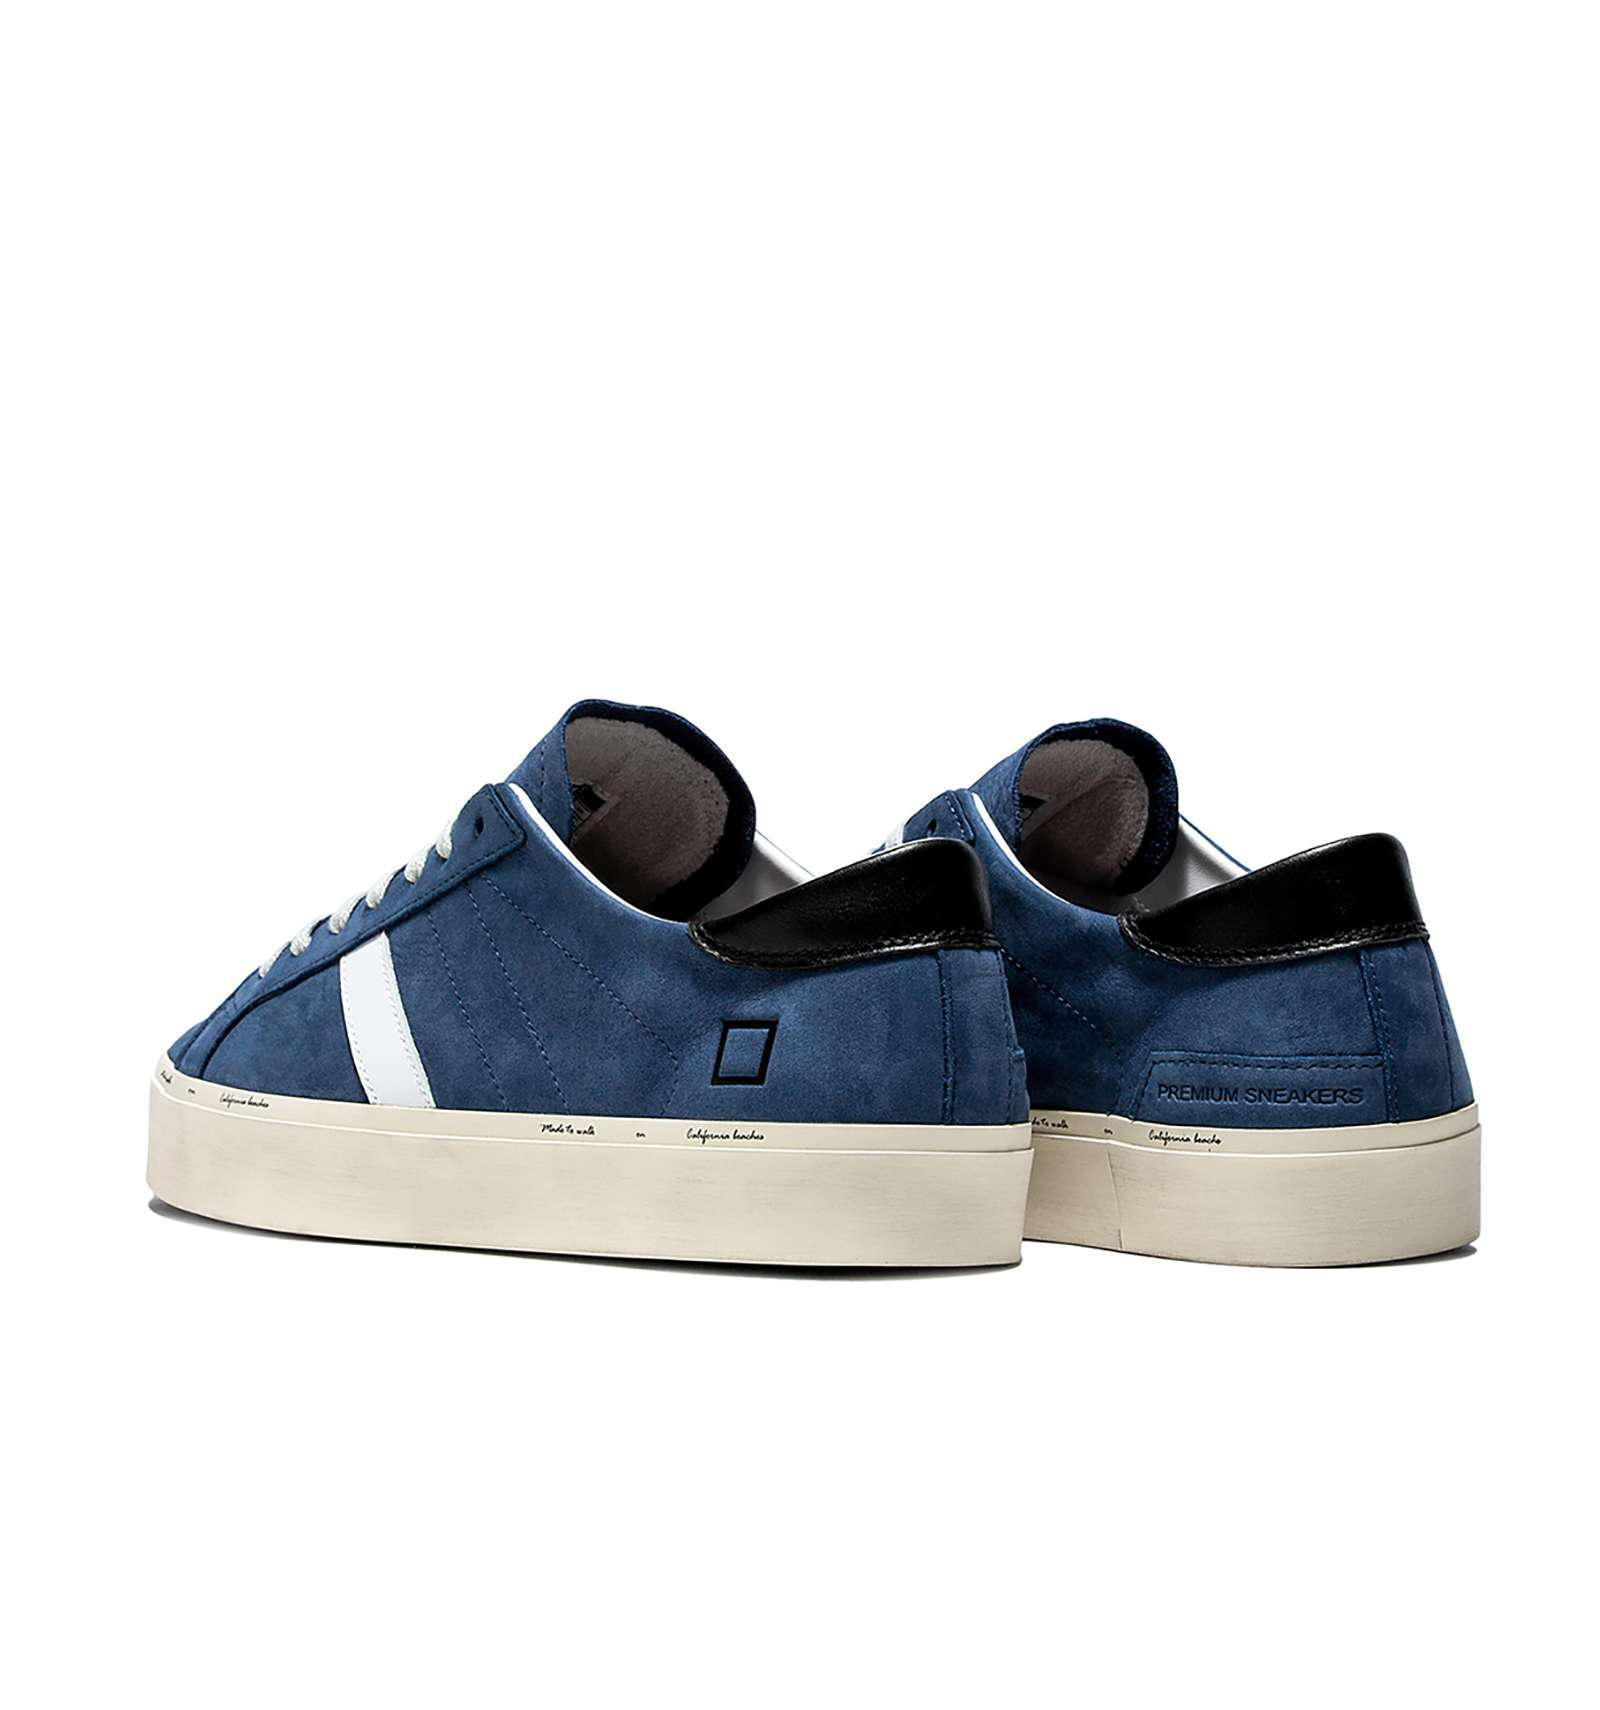 https://www.parmax.com/media/catalog/product/a/i/AI-outlet_parmax-sneaker-uomo-Date-M301-C.jpg